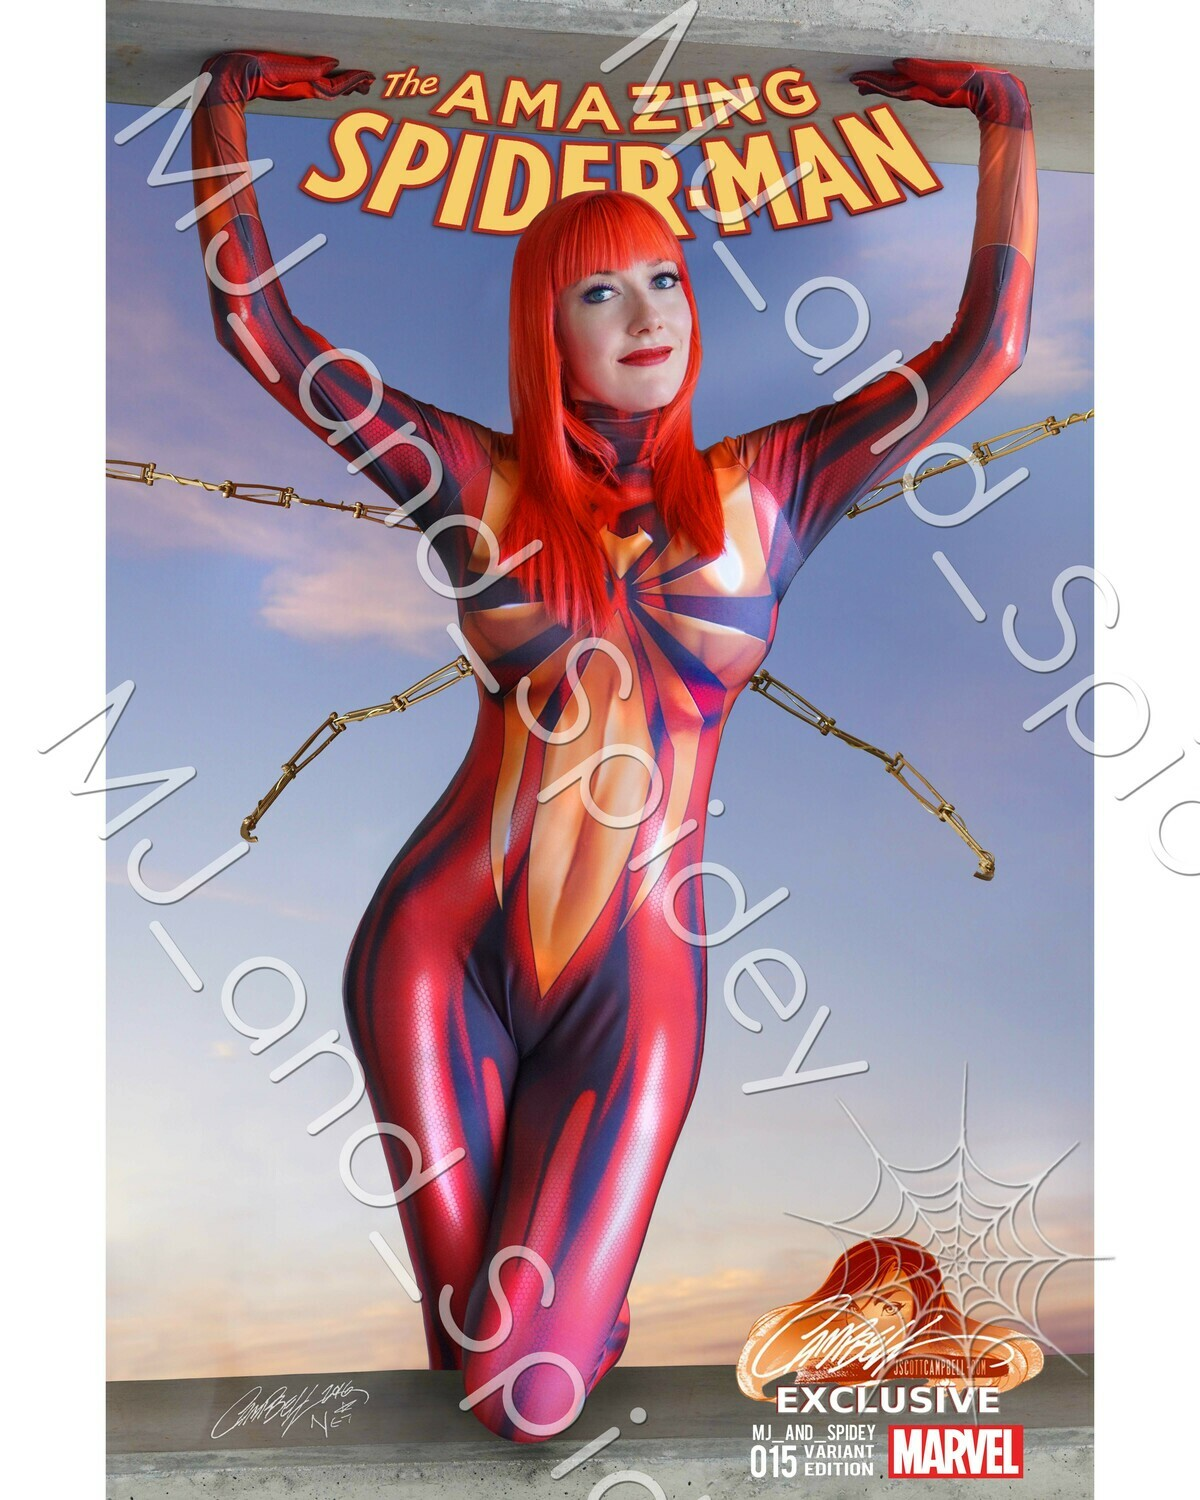 Marvel - Spider-Man - Mary Jane Watson - Iron Spider - Campbell No. 1 - Digital Cosplay Image (@MJ_and_Spidey, MJ and Spidey, Comics)